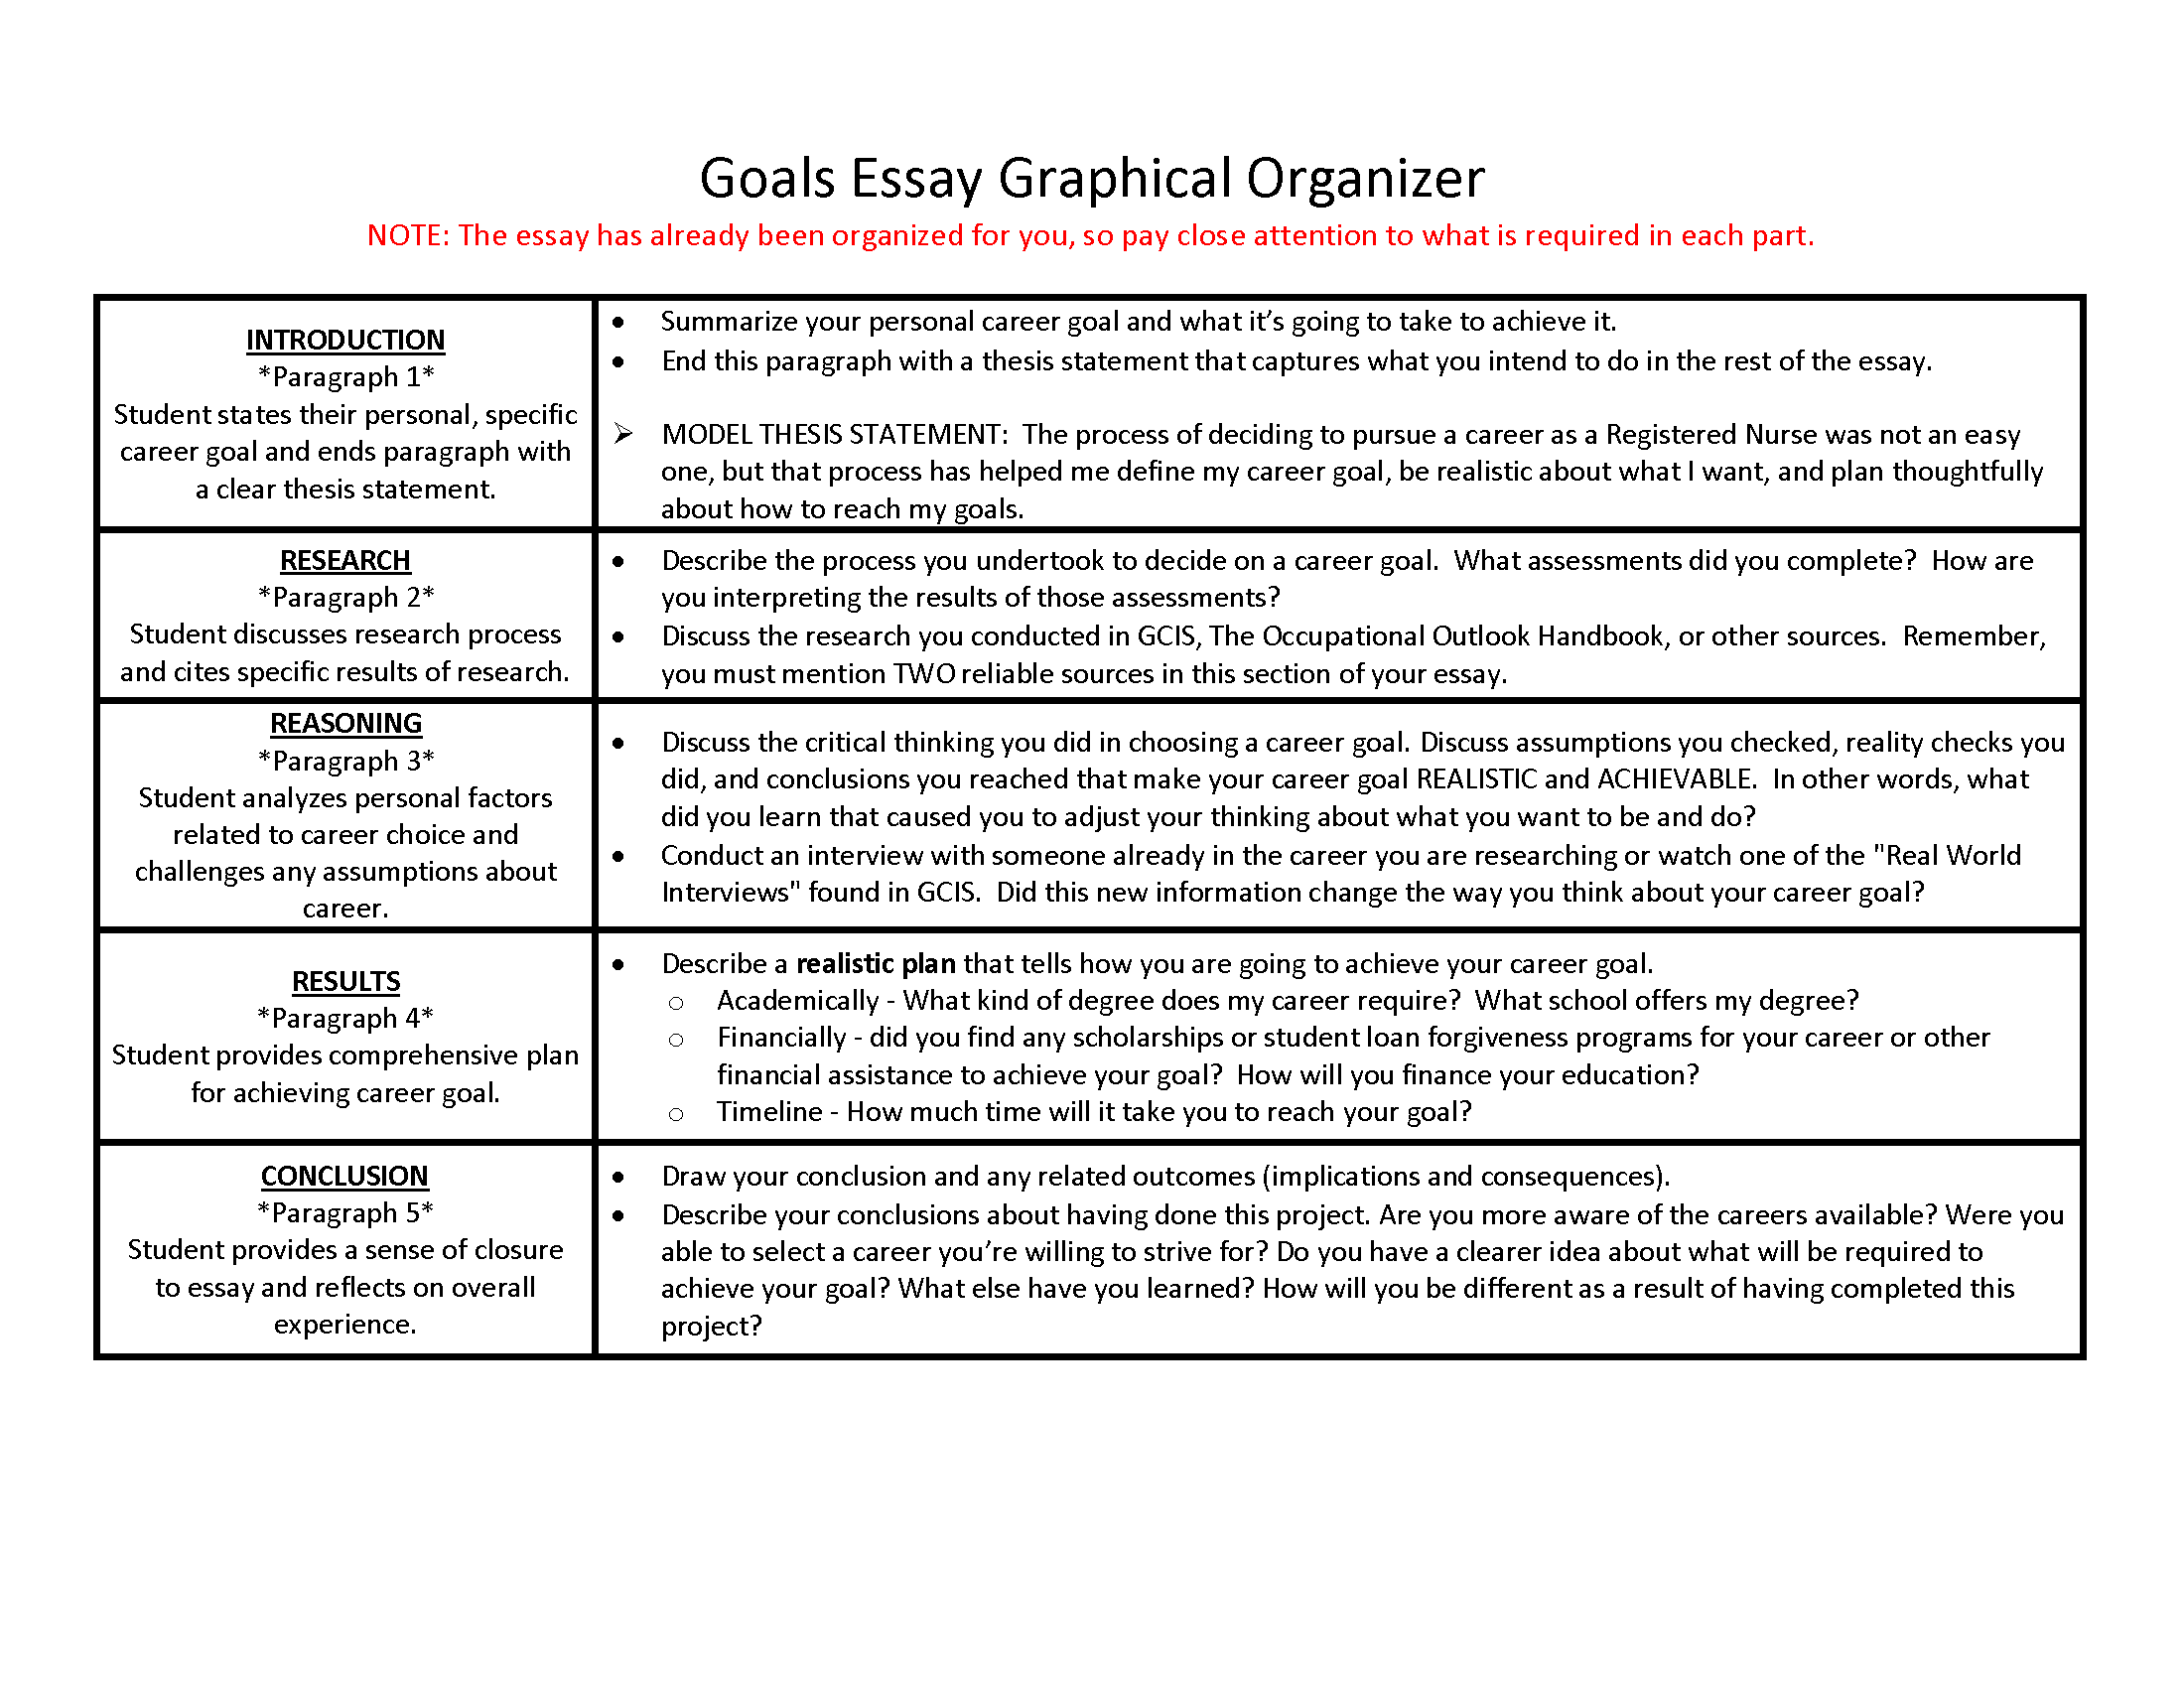 How to write a scholarship essay about career goals